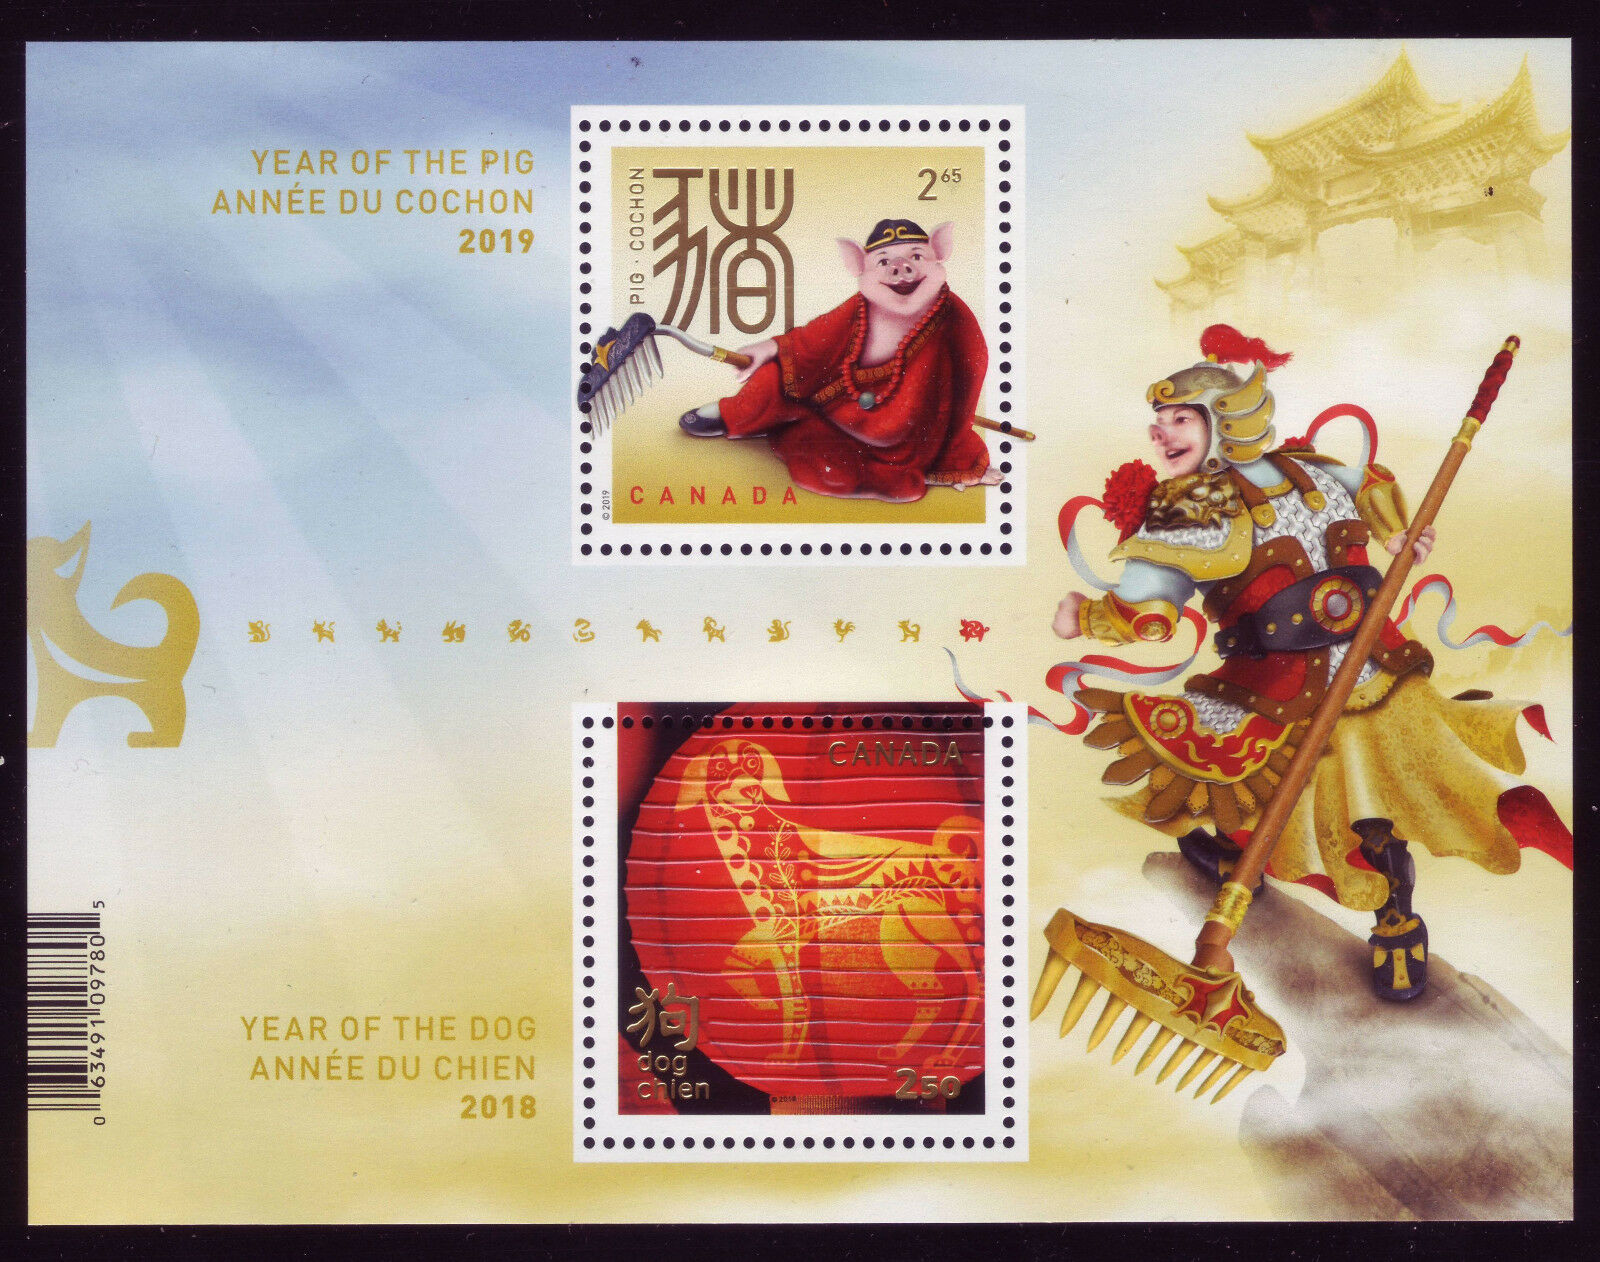 Canada - Year of the Pig (January 18, 2019) miniature sheet of 2